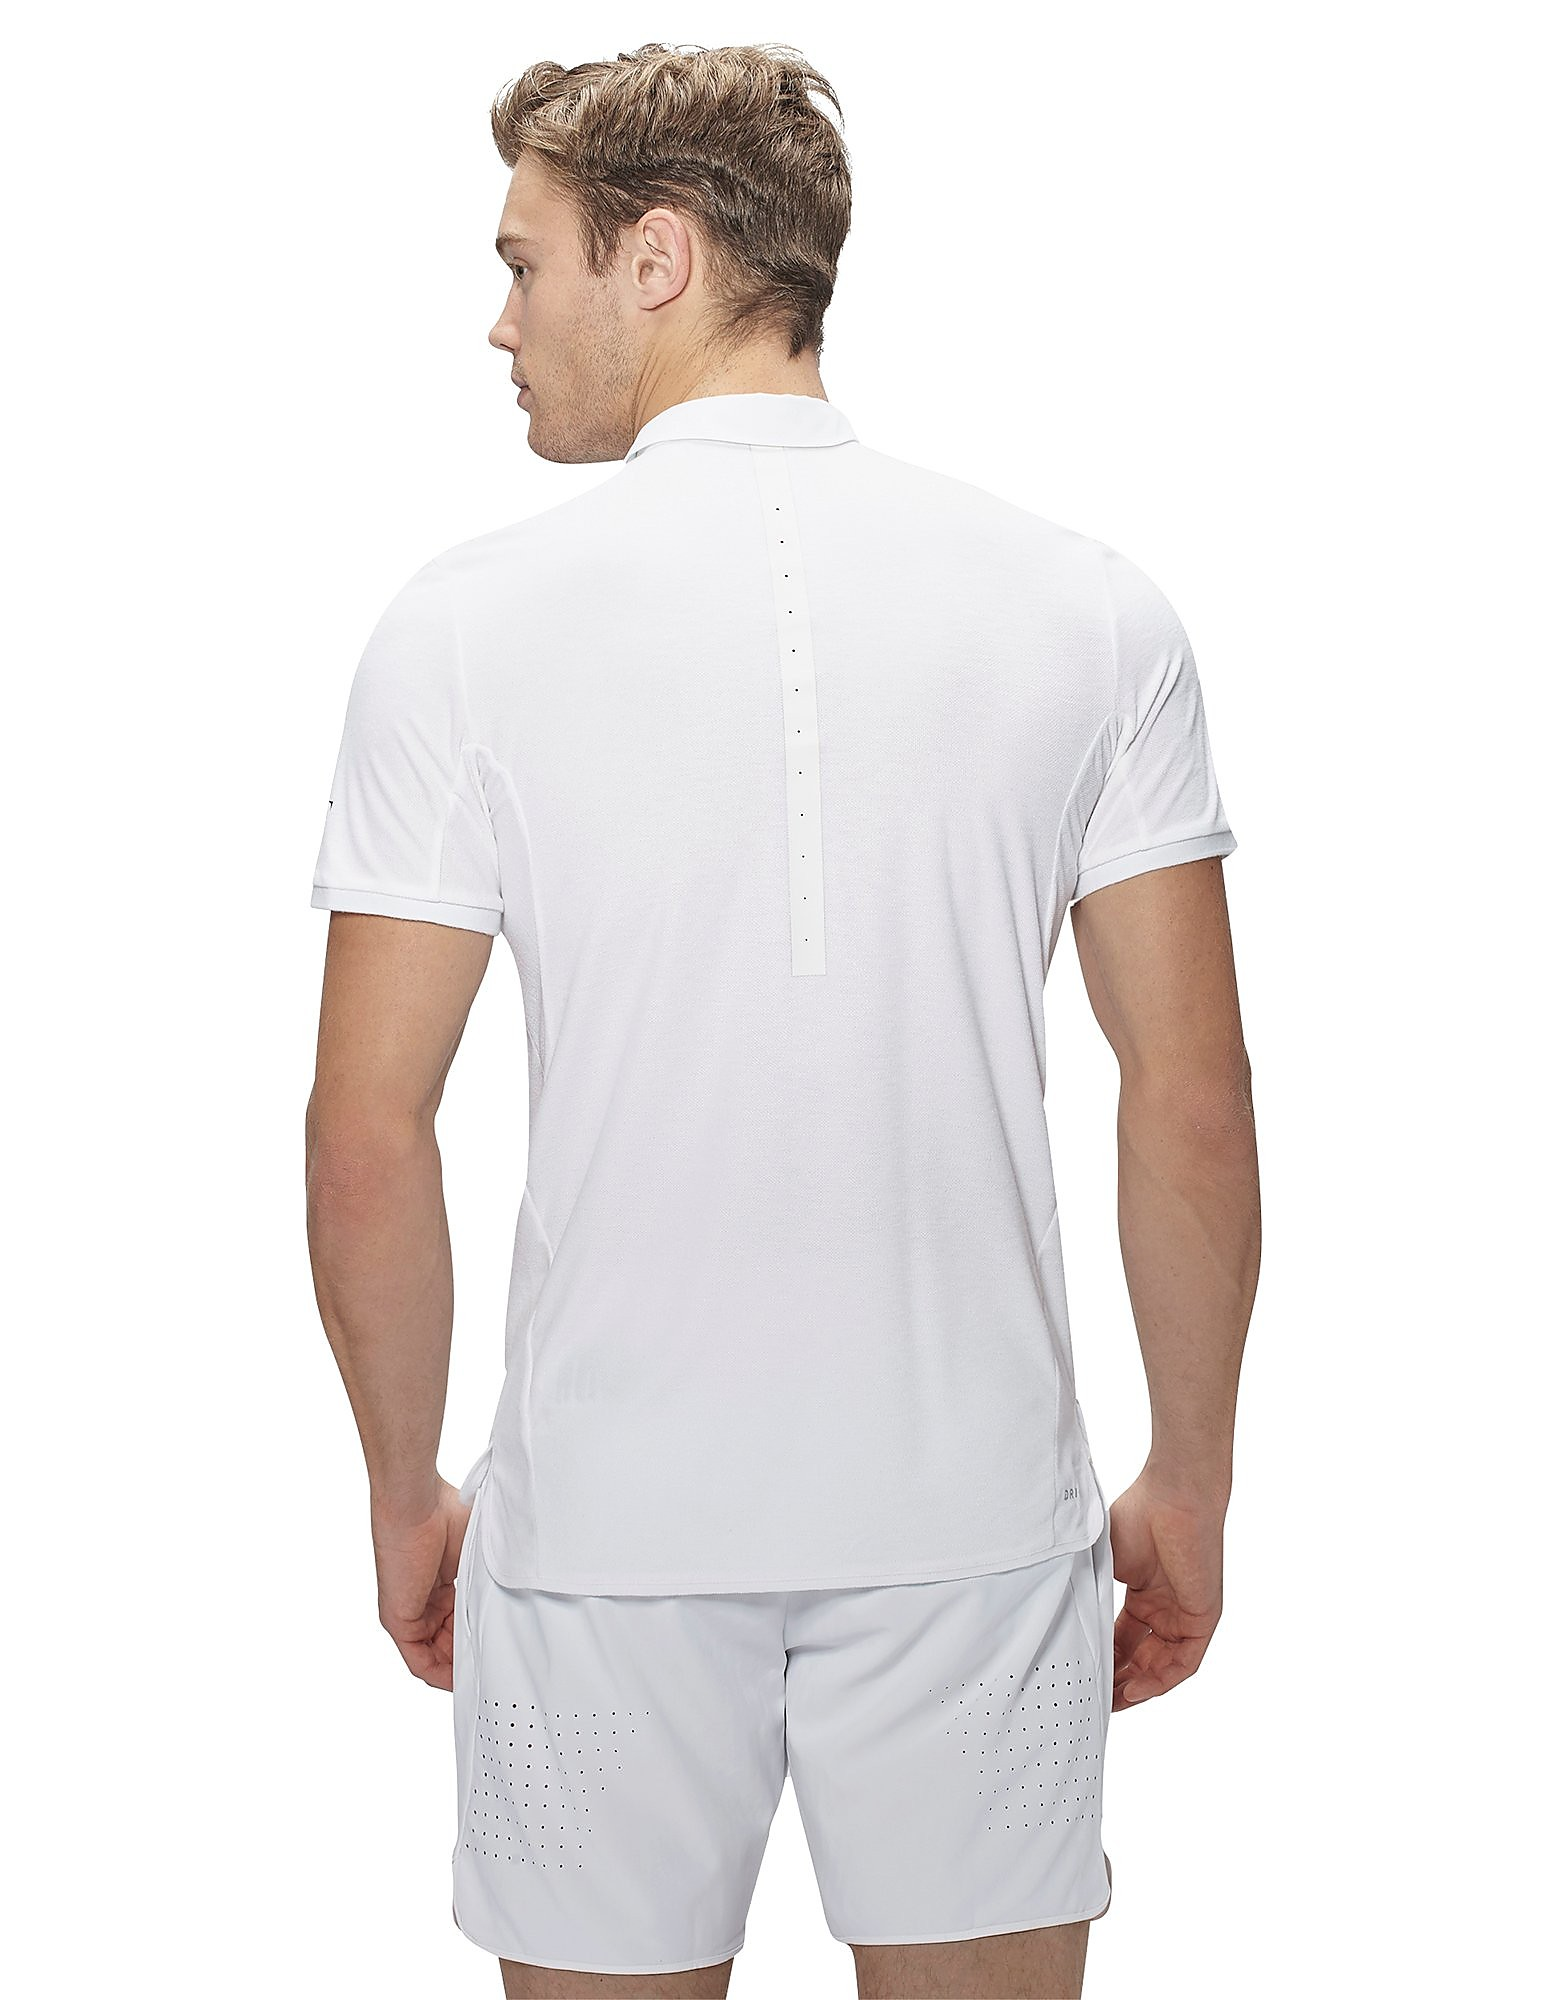 Nike Roger Federer Advance Polo Shirt